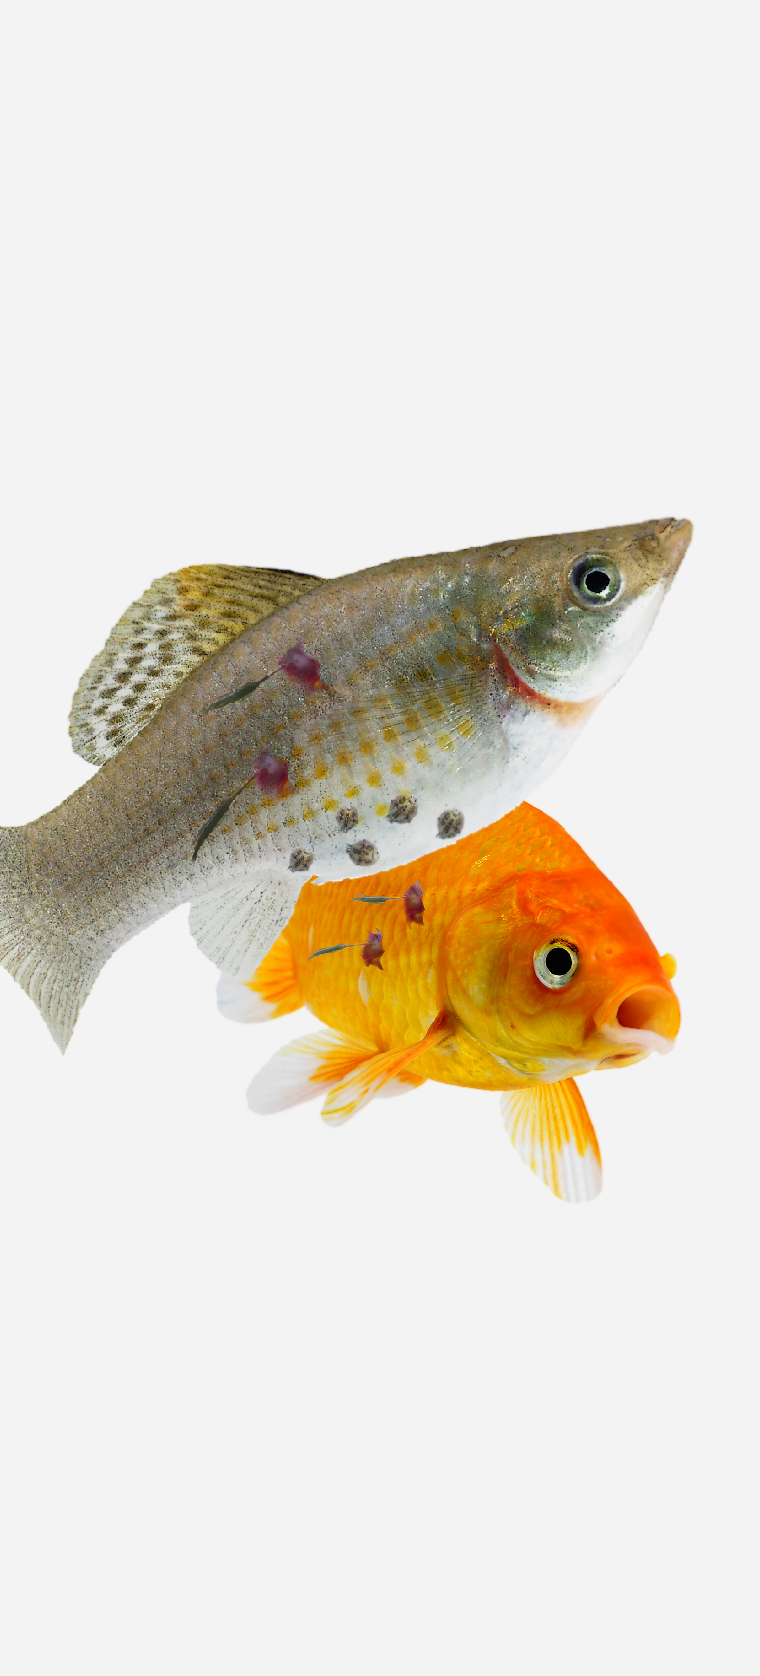 Silver tropical aquarium fish with reddened gills, round lice and small hanging worms attached to body. Goldfish with small hanging worms attached to the body